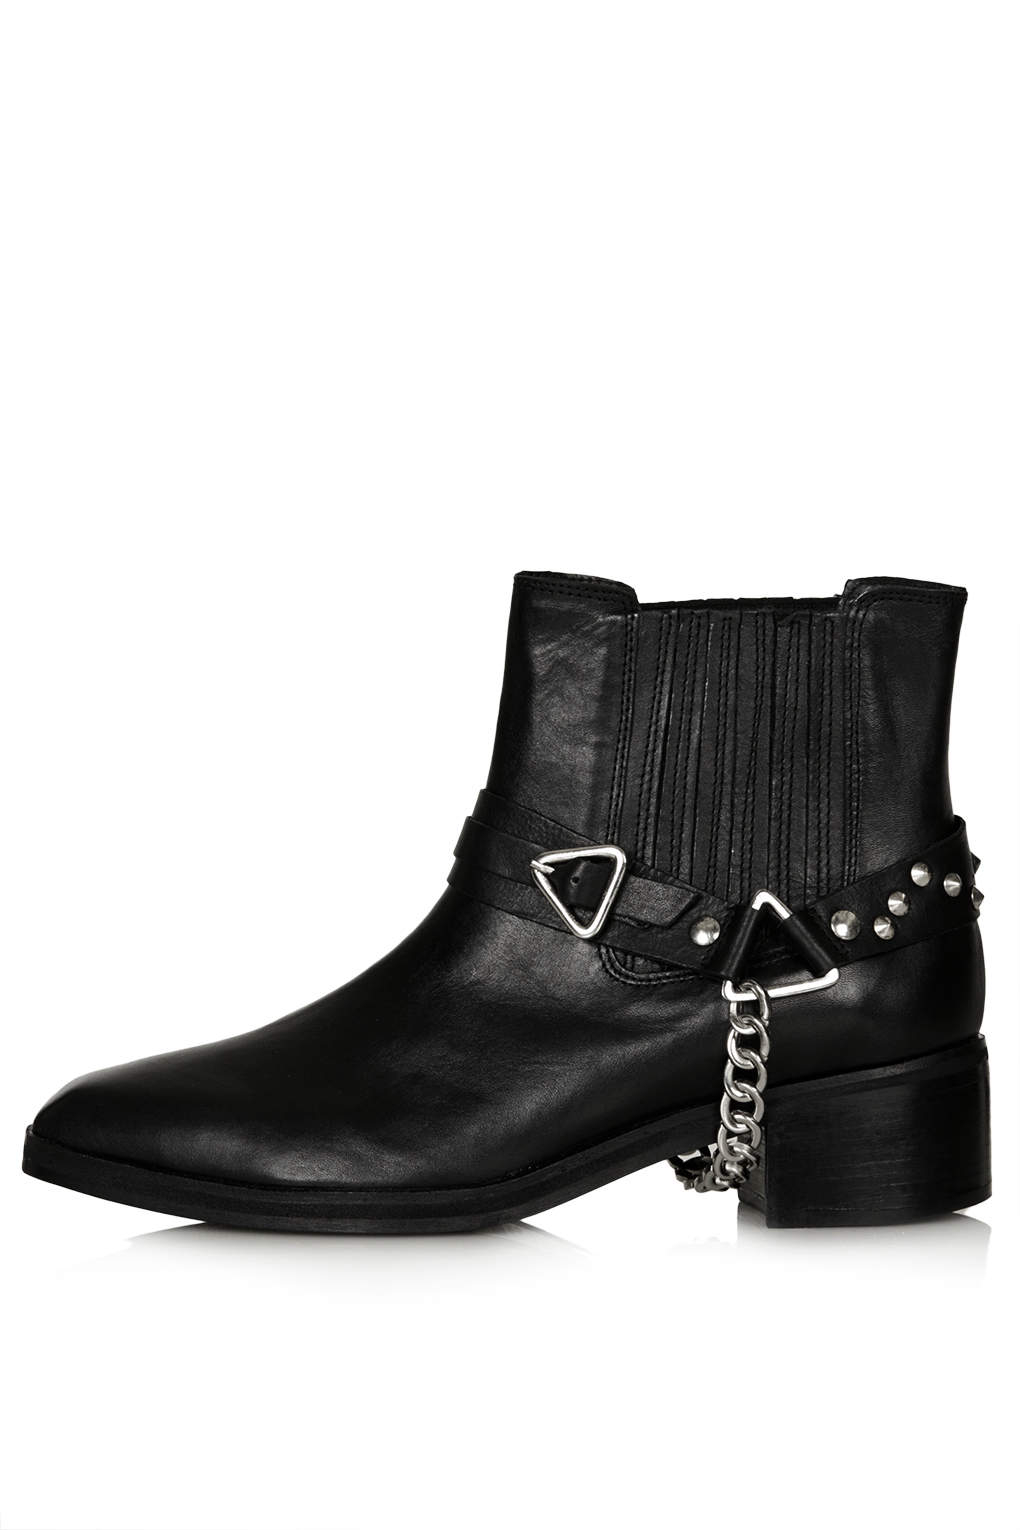 TOPSHOP Avatar Harness Boots Black